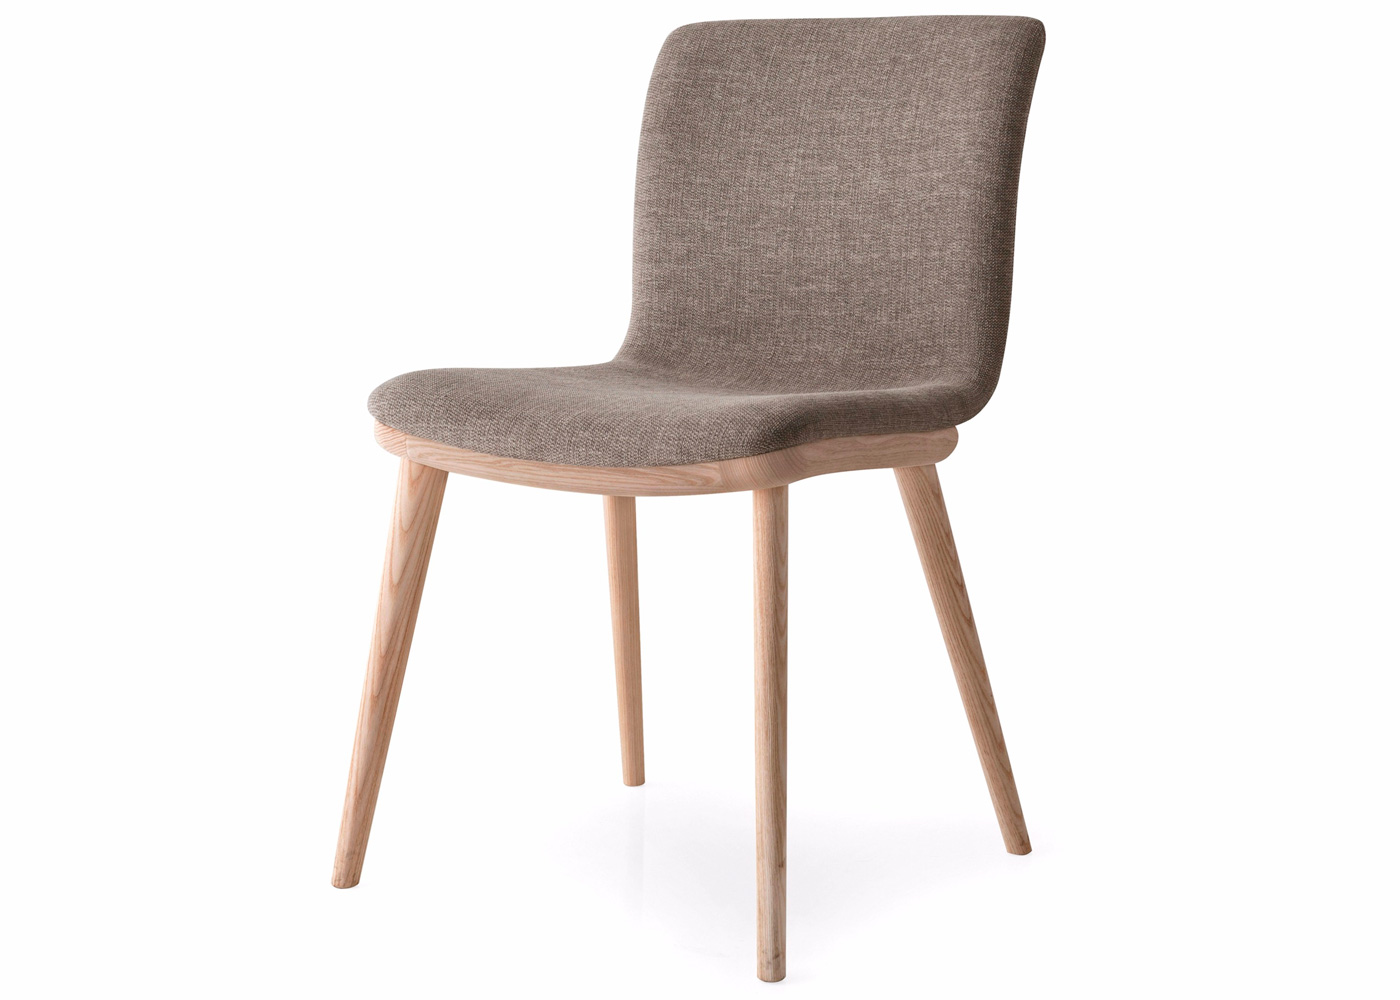 Calligaris Chairs Calligaris Annie Chair Midfurn Furniture Superstore